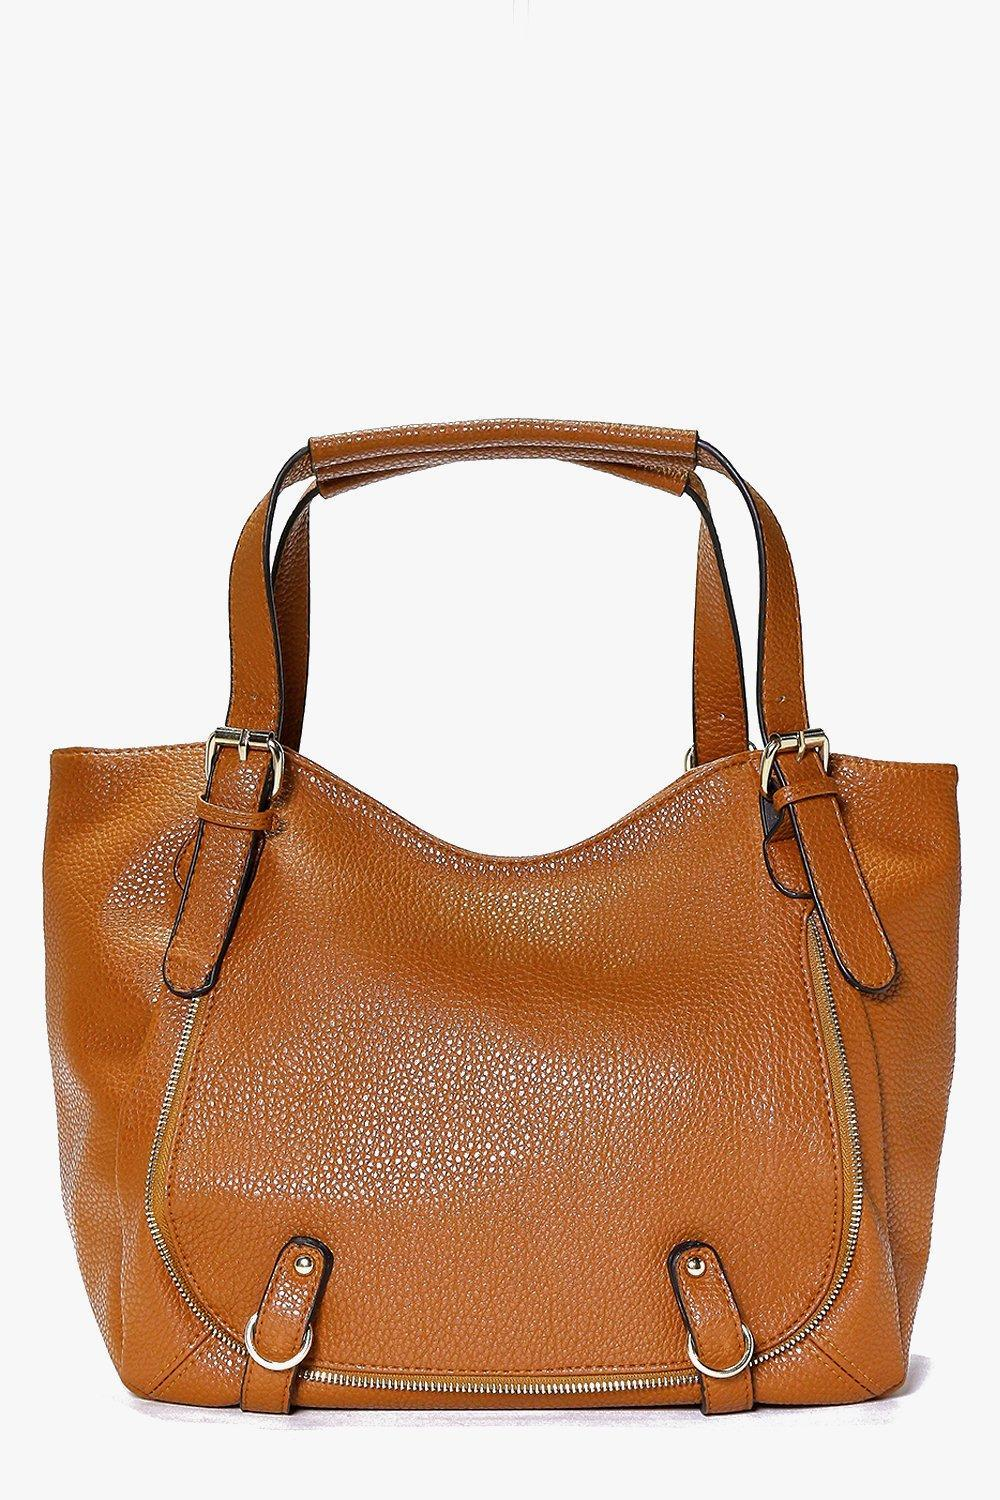 Pocket Detail Slouch Day Bag Tan - predominant colour: tan; occasions: casual, creative work; type of pattern: standard; style: tote; length: handle; size: standard; material: faux leather; pattern: plain; finish: plain; season: s/s 2016